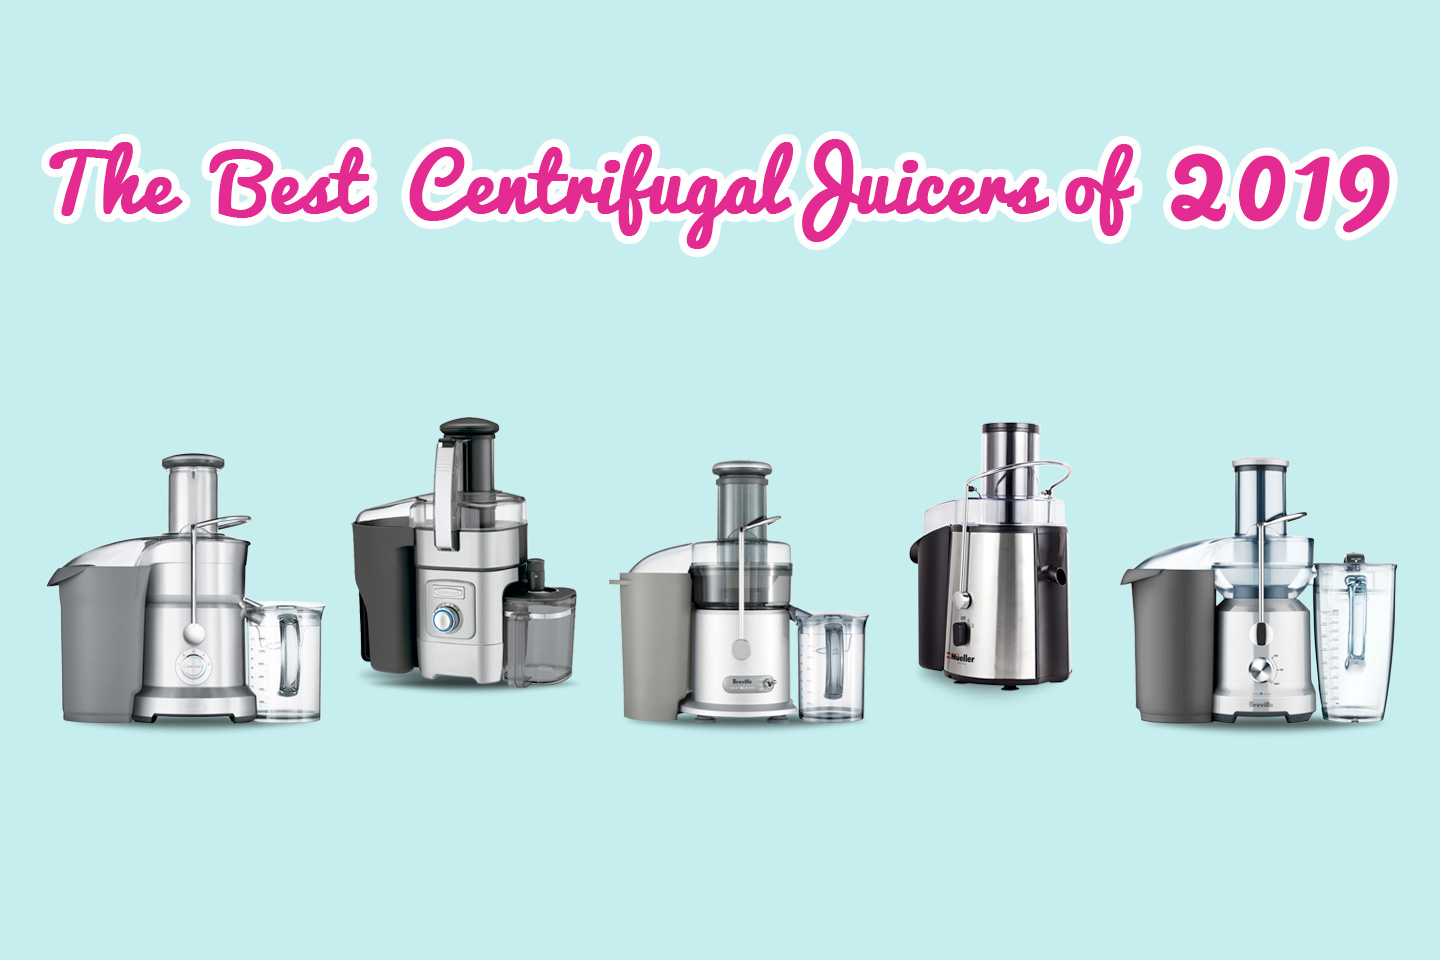 The Best Centrifugal Juicers of 2019 | Hearty Blends